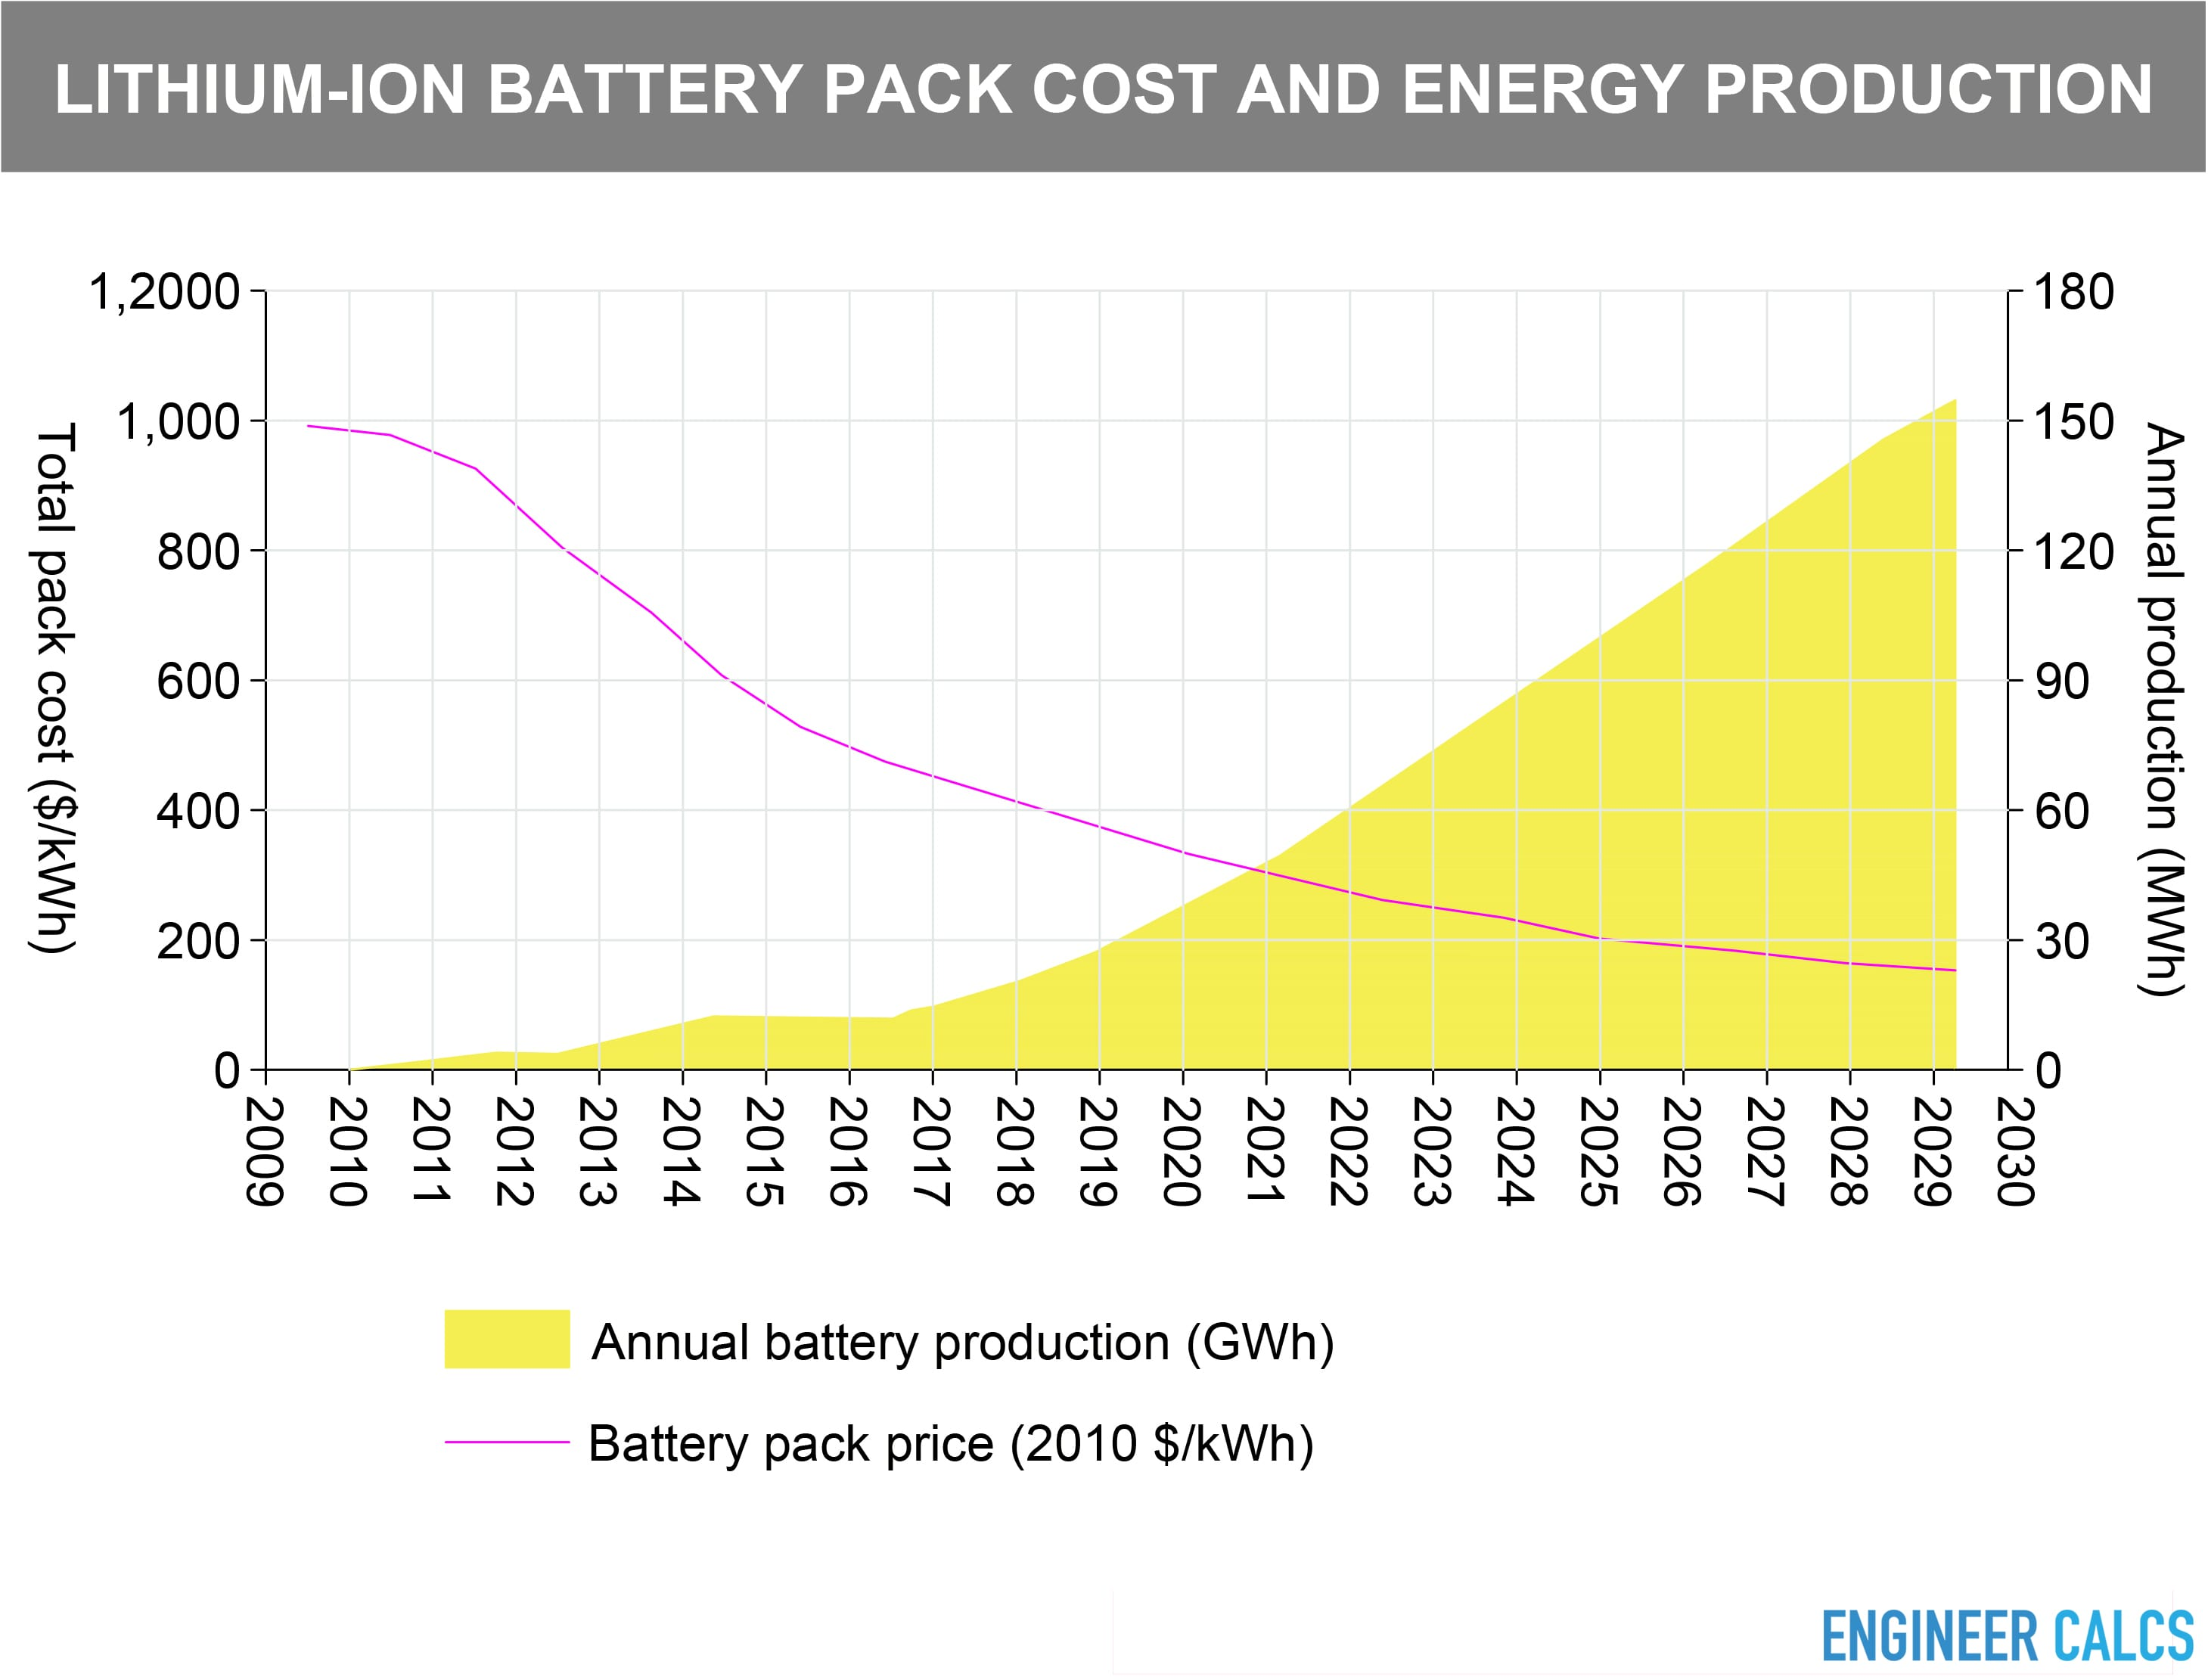 Lithium ion battery pack cost and energy production